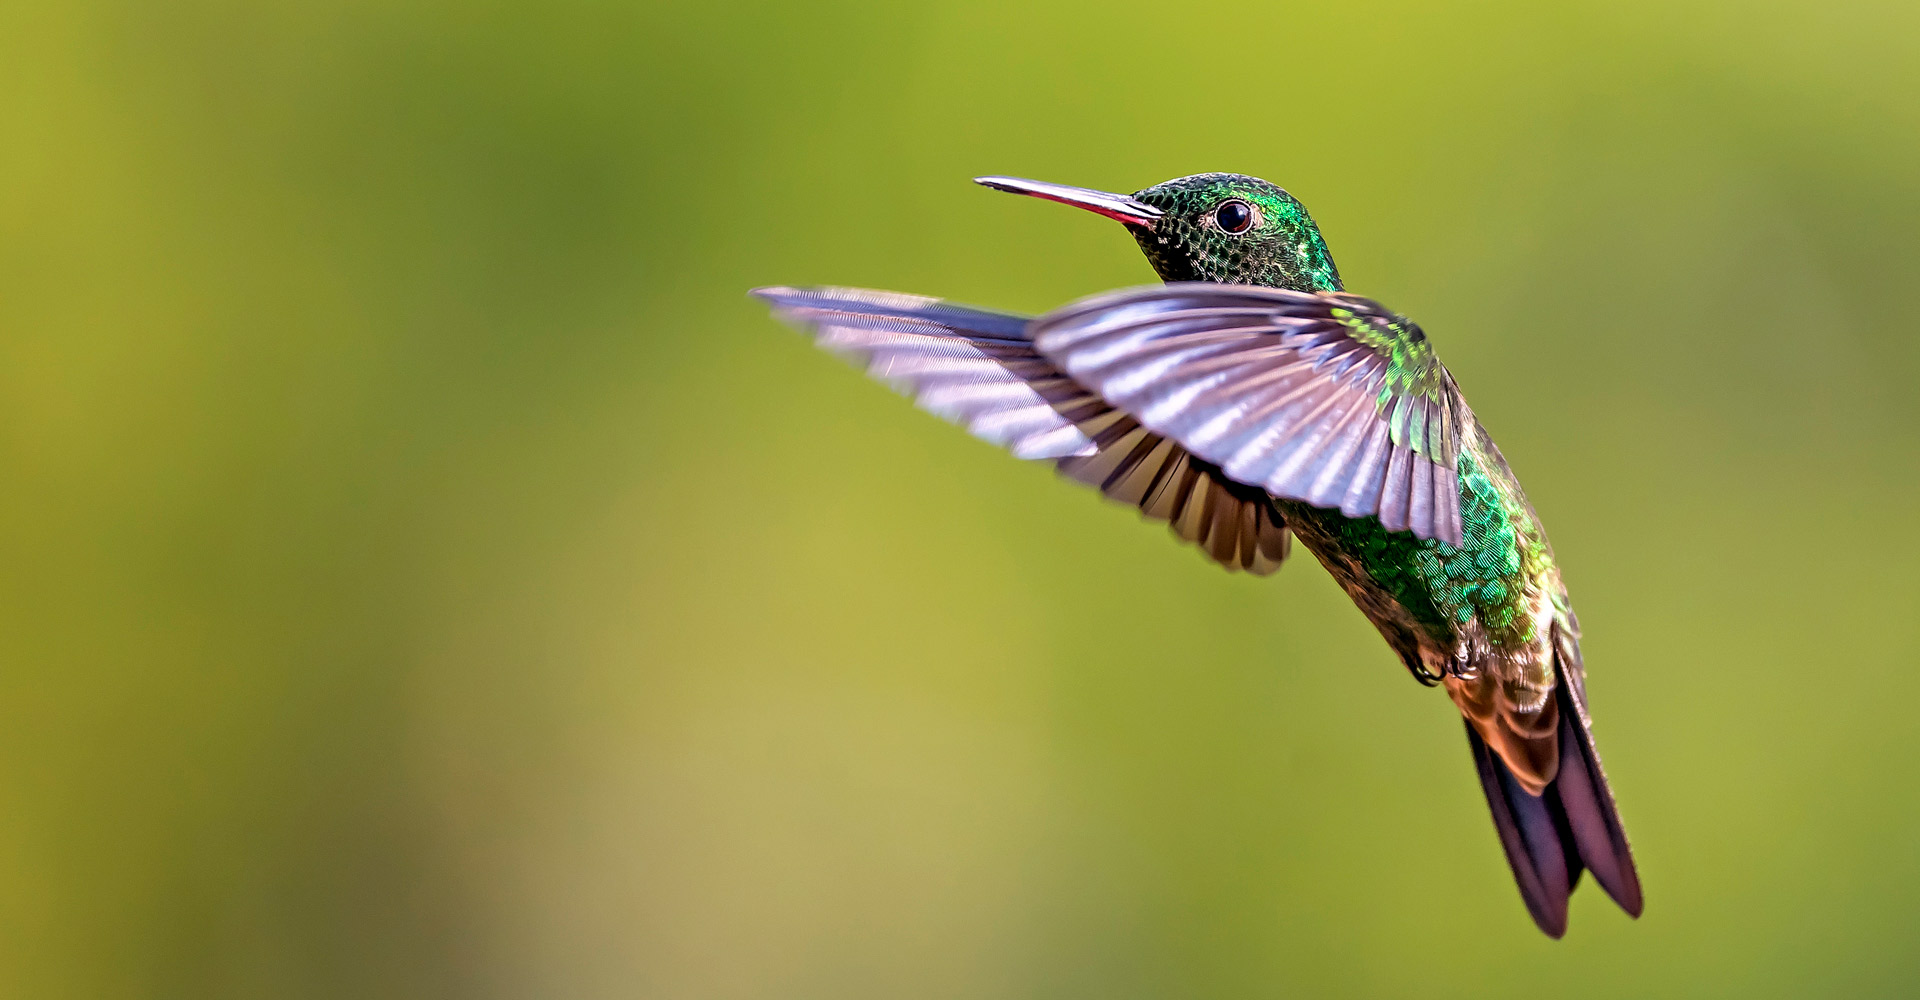 Photography to Conserve - Conjour Wildlife Photography Feature - Hummingbird - Feature